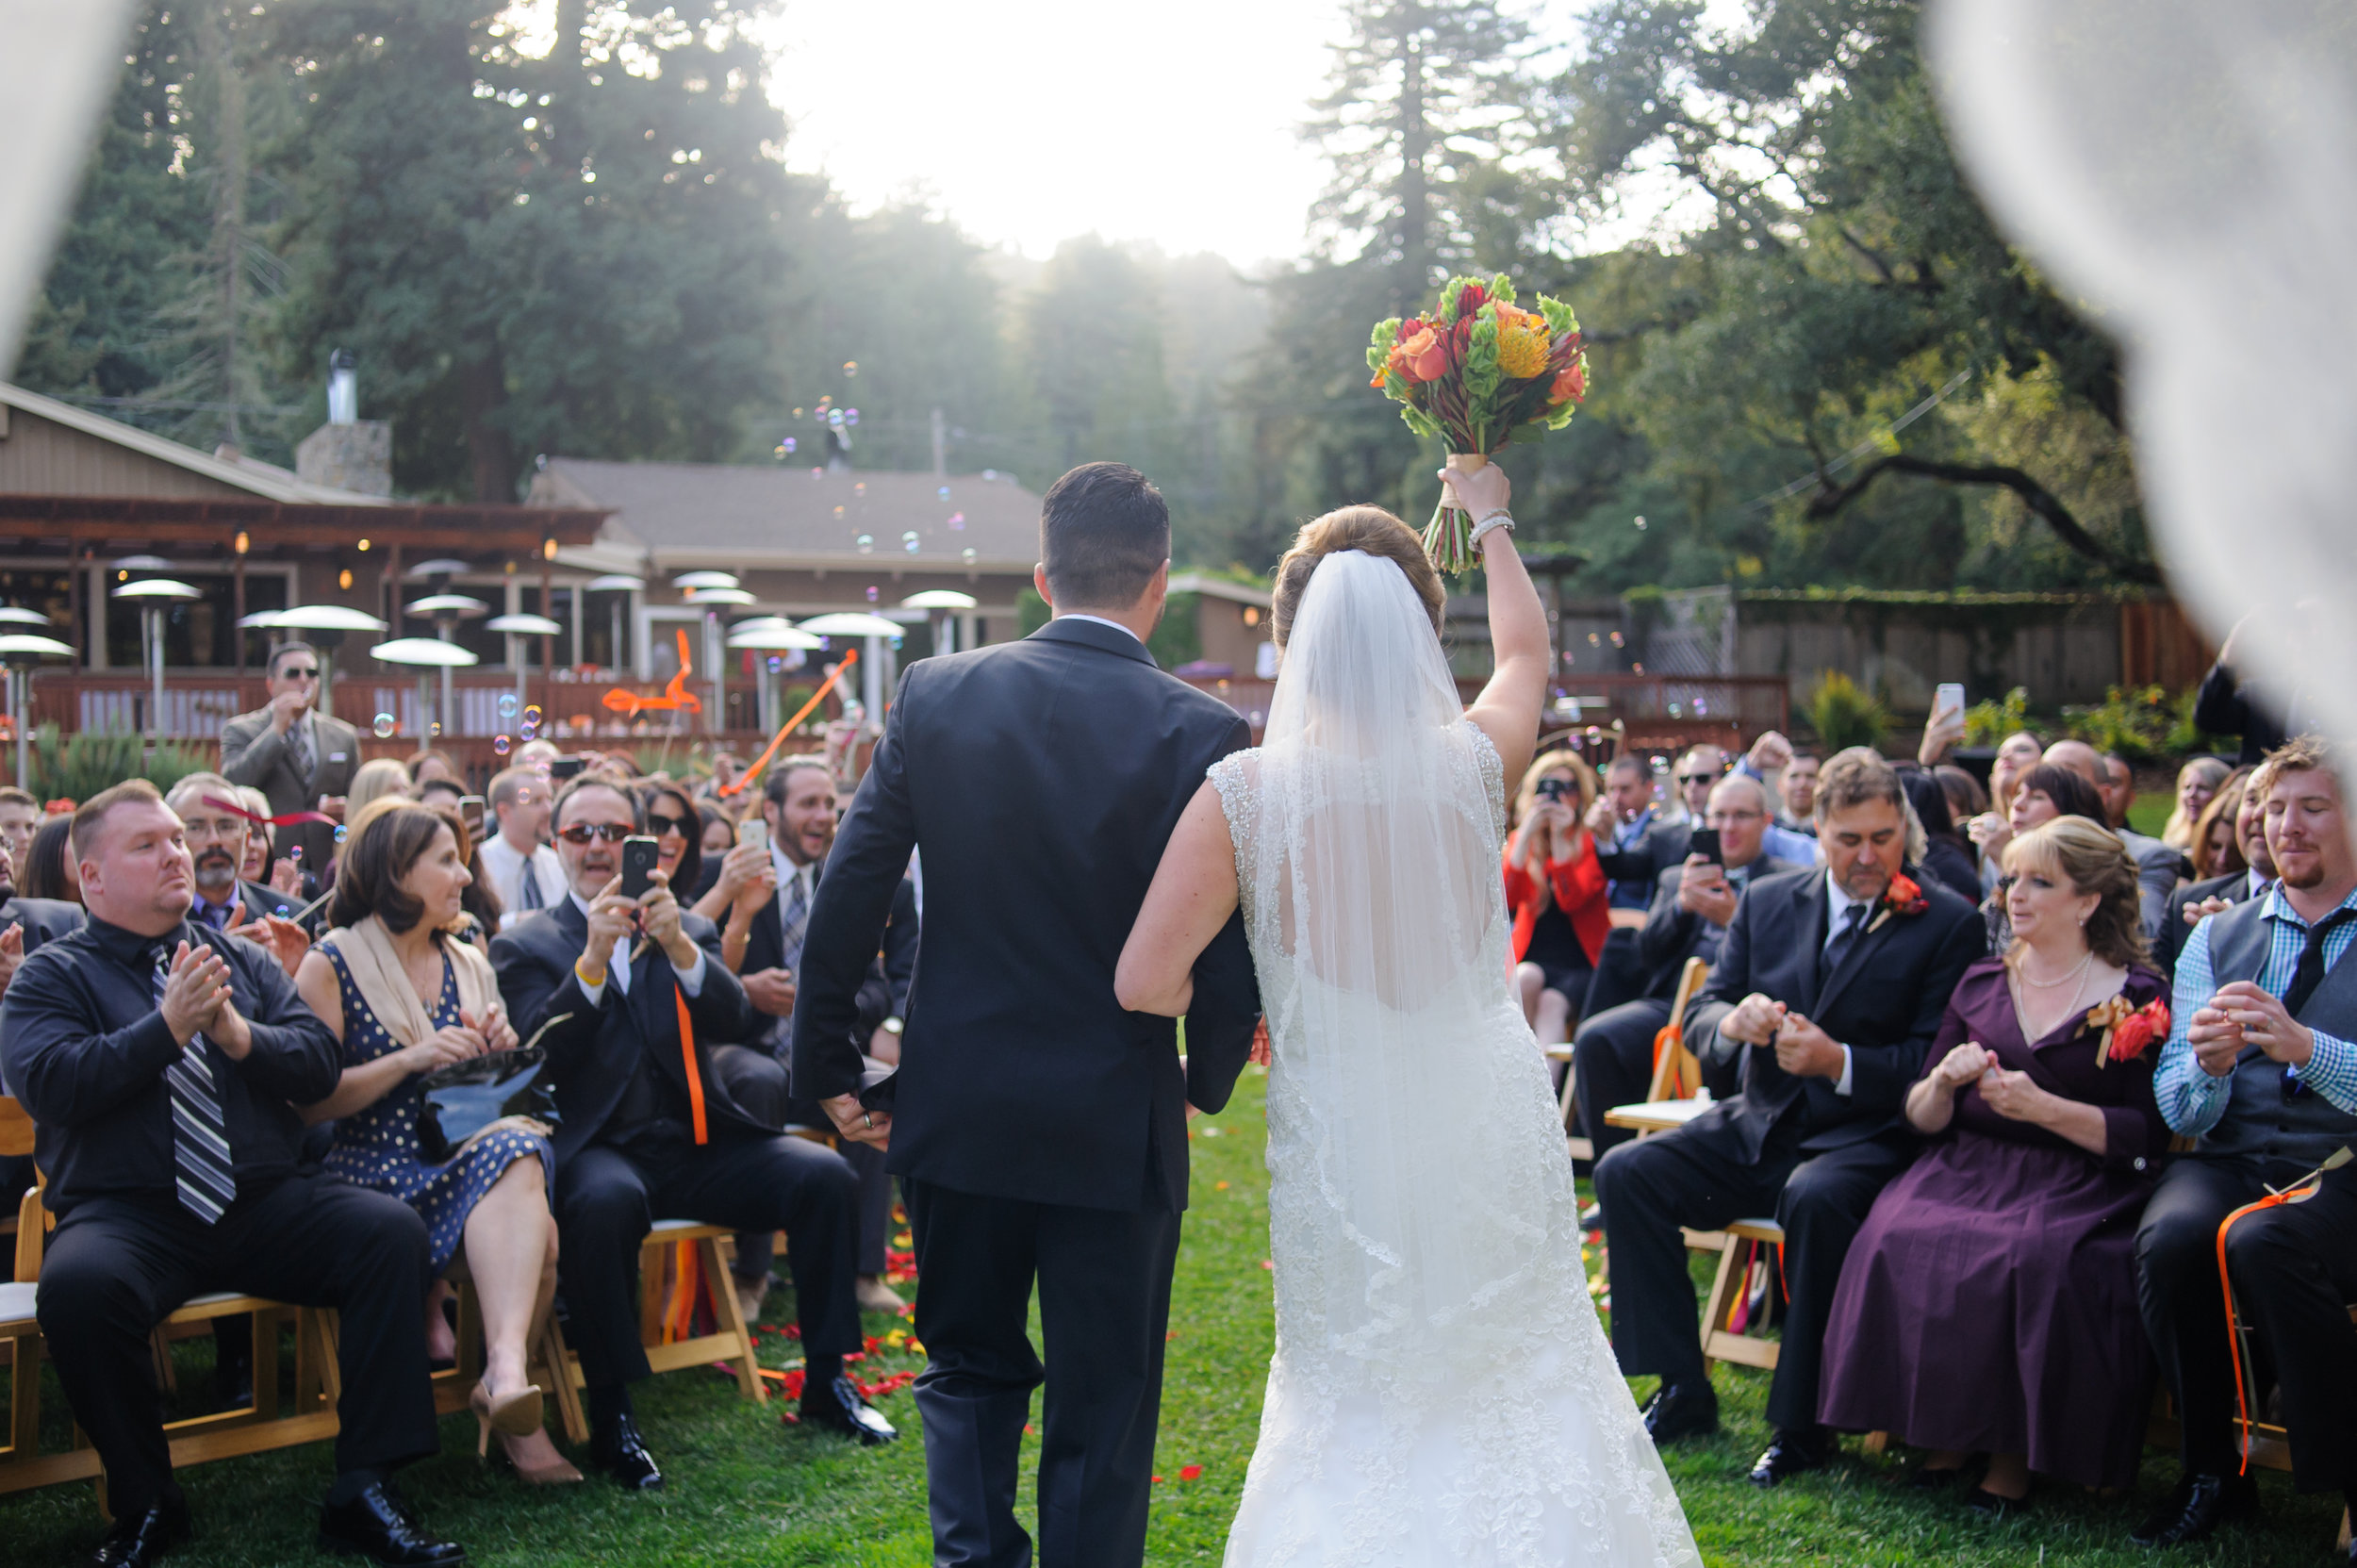 sammi-matt-018-the-mountain-terrace-woodside-wedding-photographer-katherine-nicole-photography.JPG